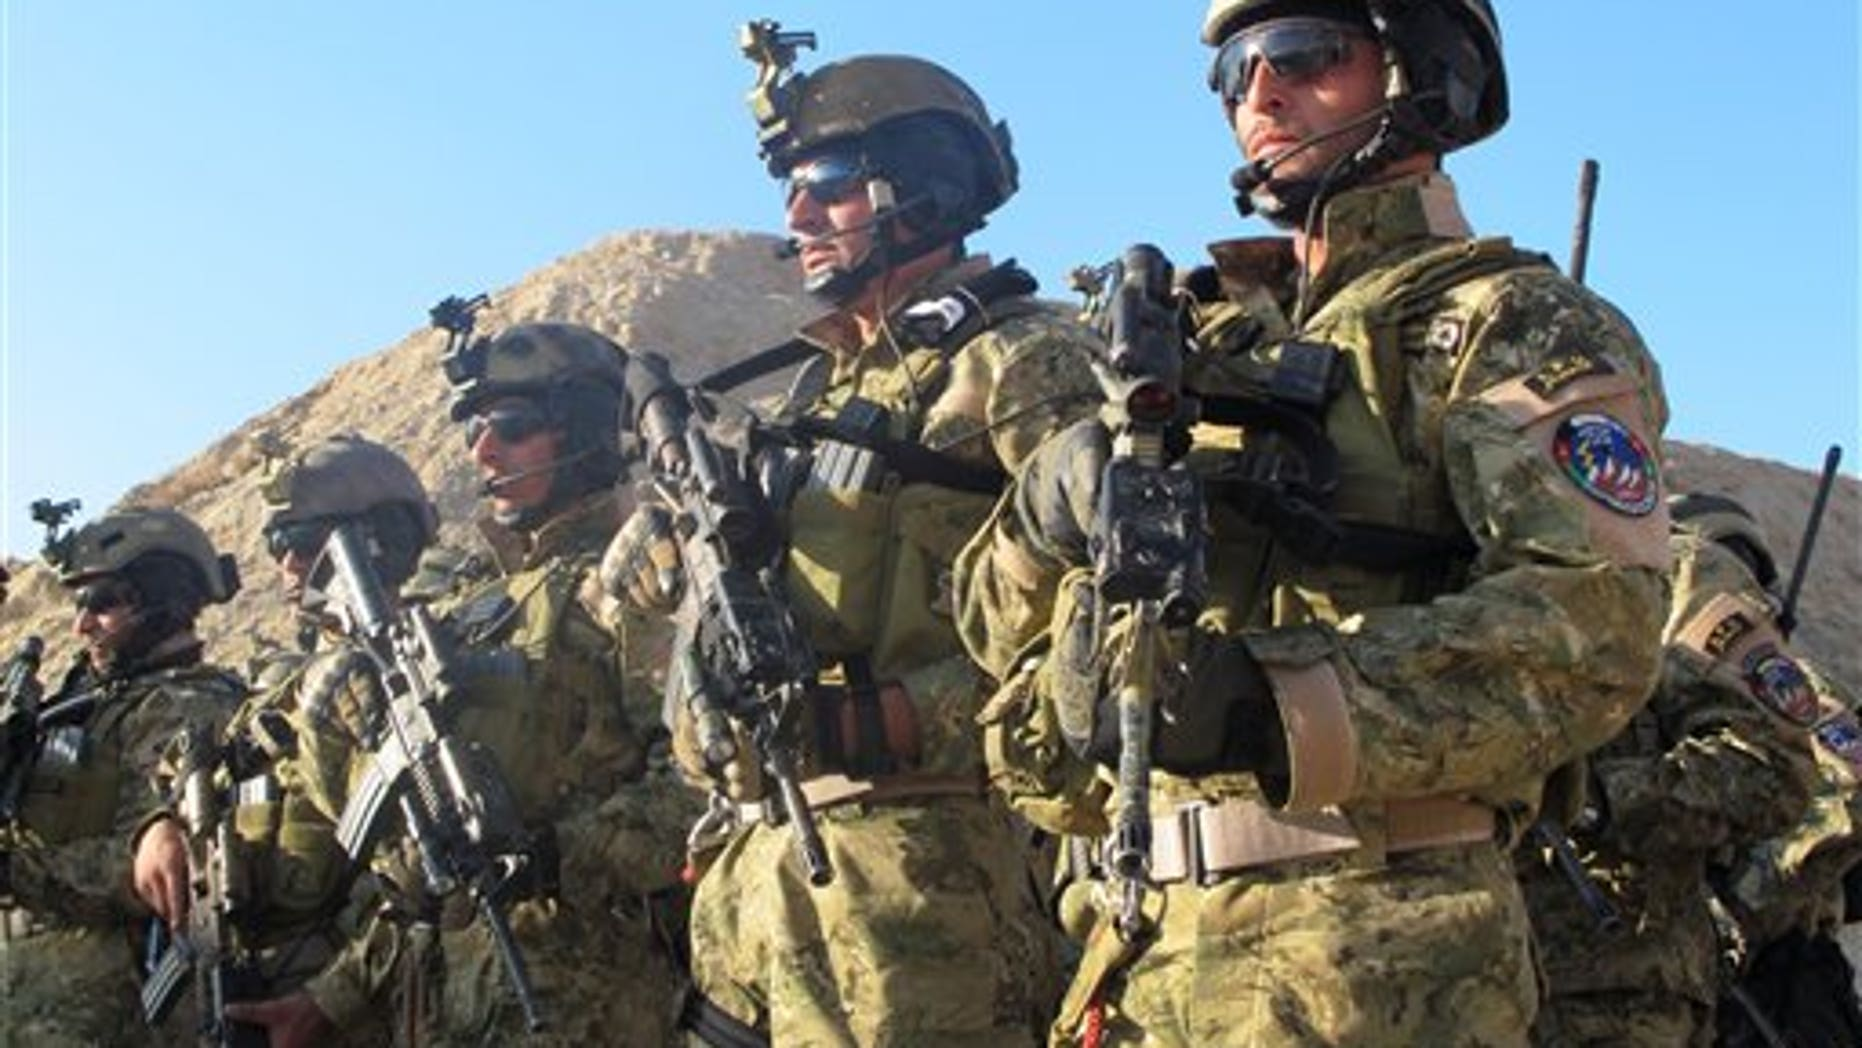 Dec. 15: Members of the growing Afghan special forces stand in formation after conducting a practice raid at a training field on the outskirts of Kabul, Afghanistan.